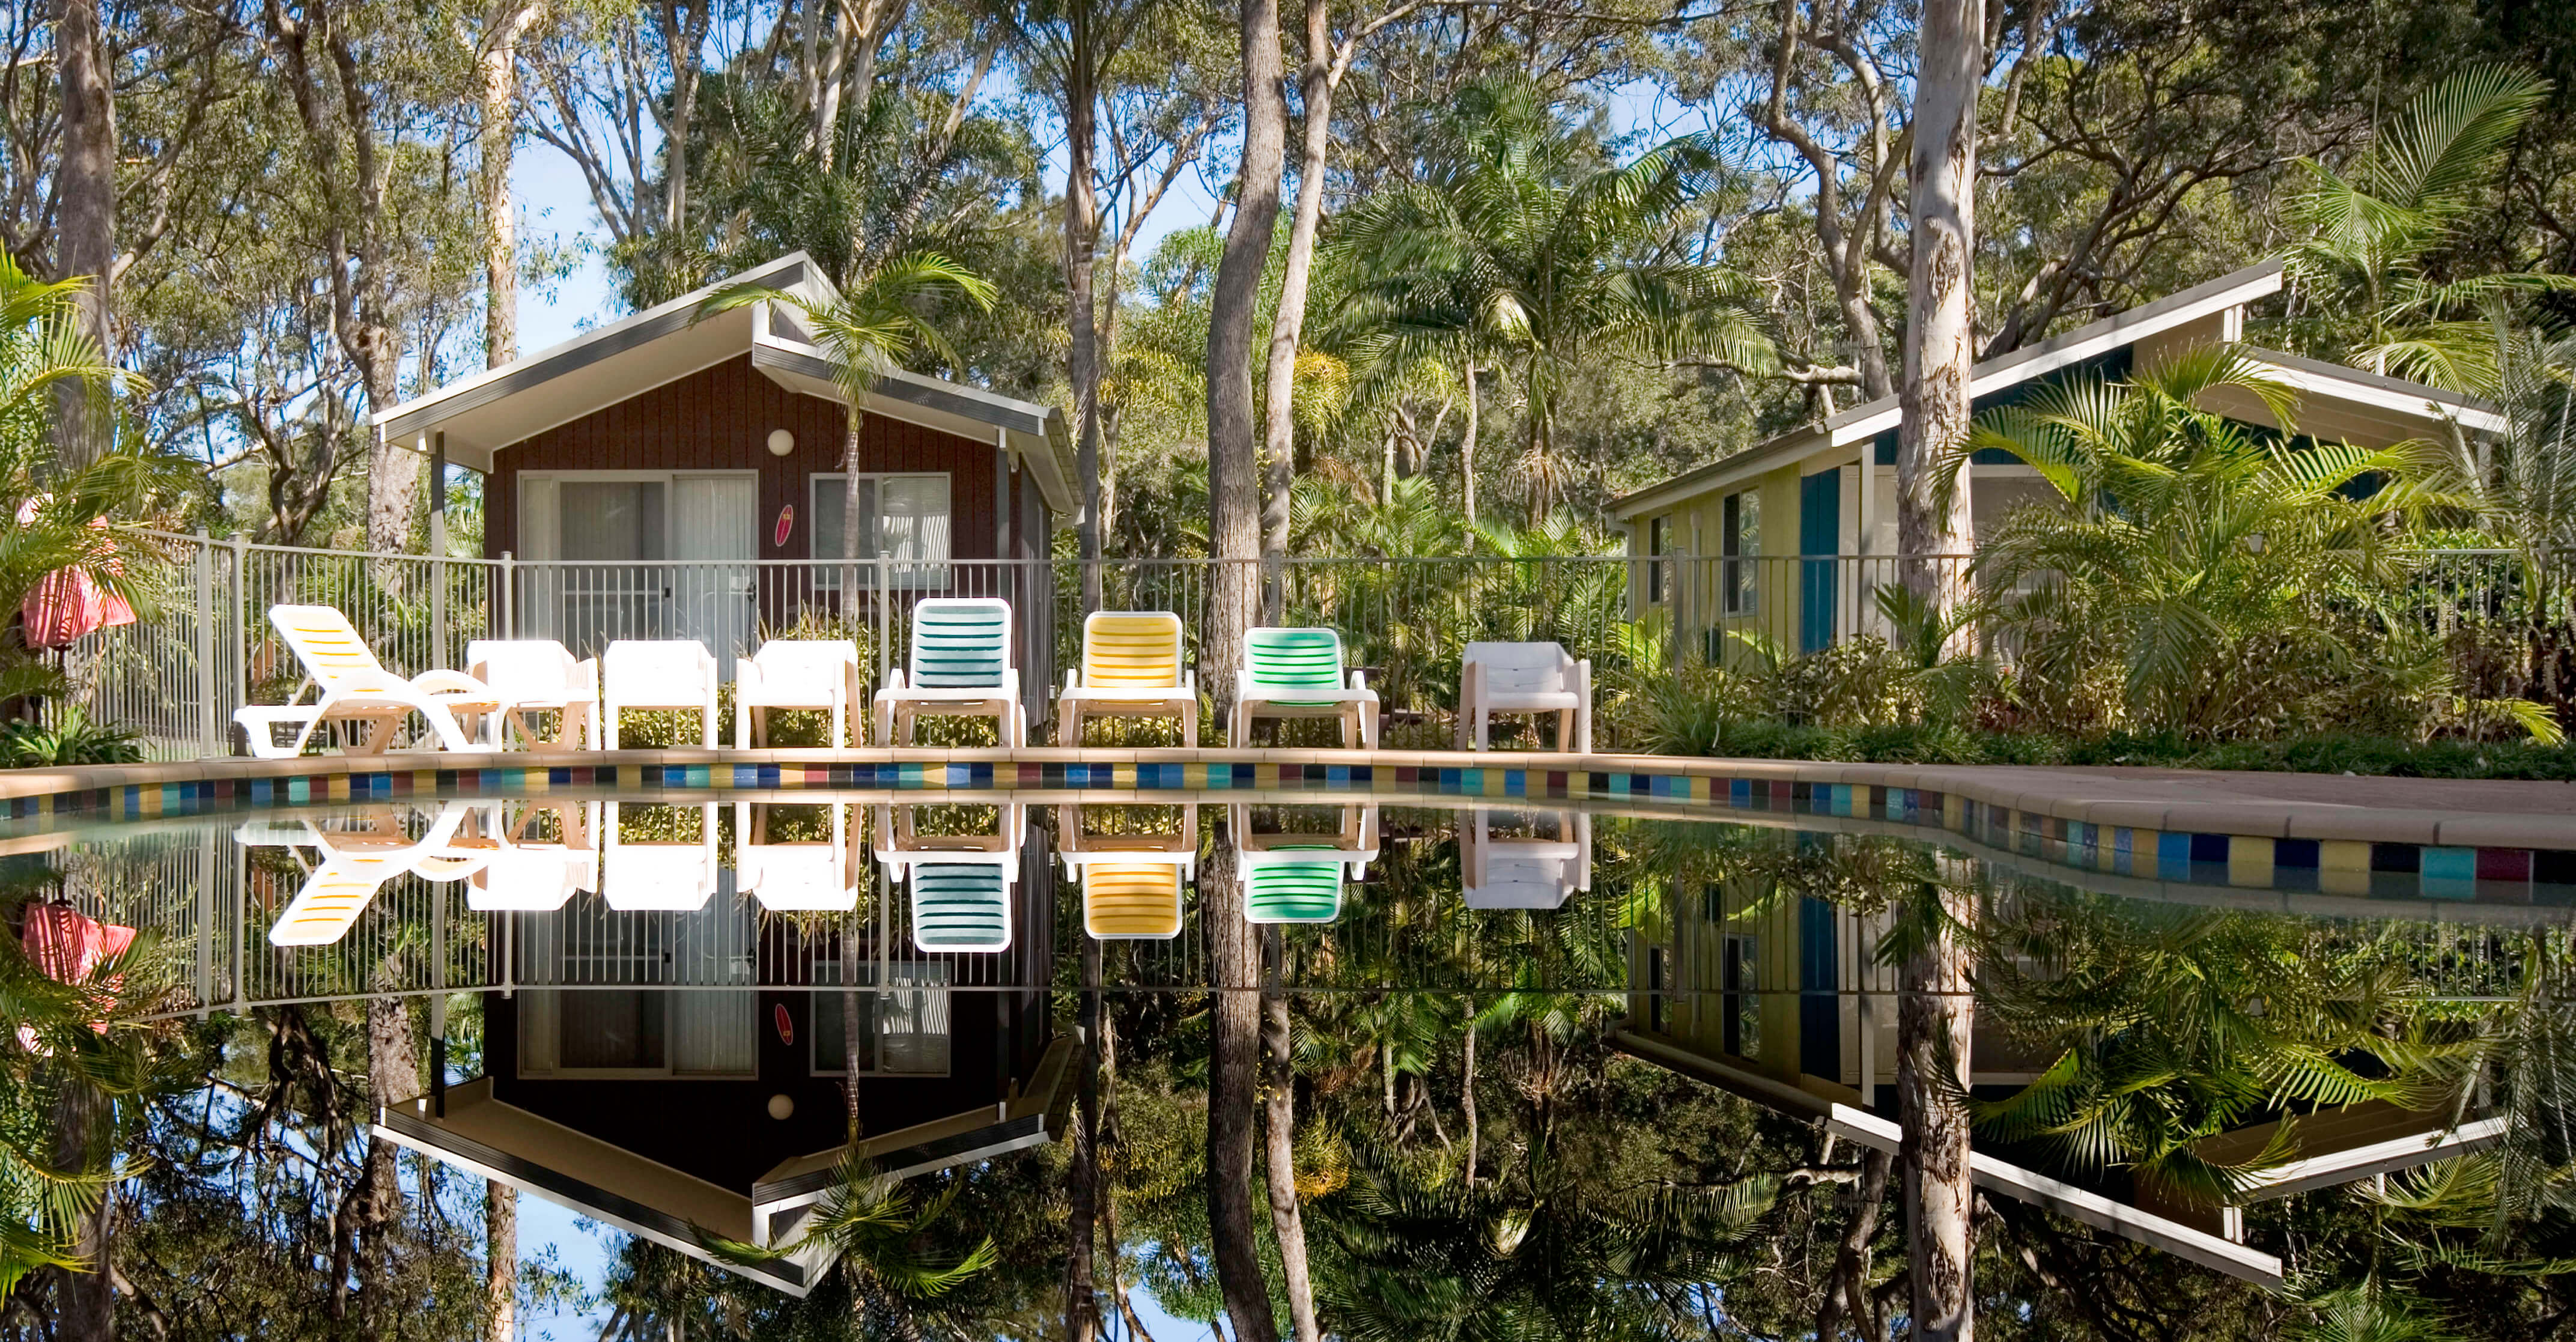 About Nambucca Beach Holiday Park